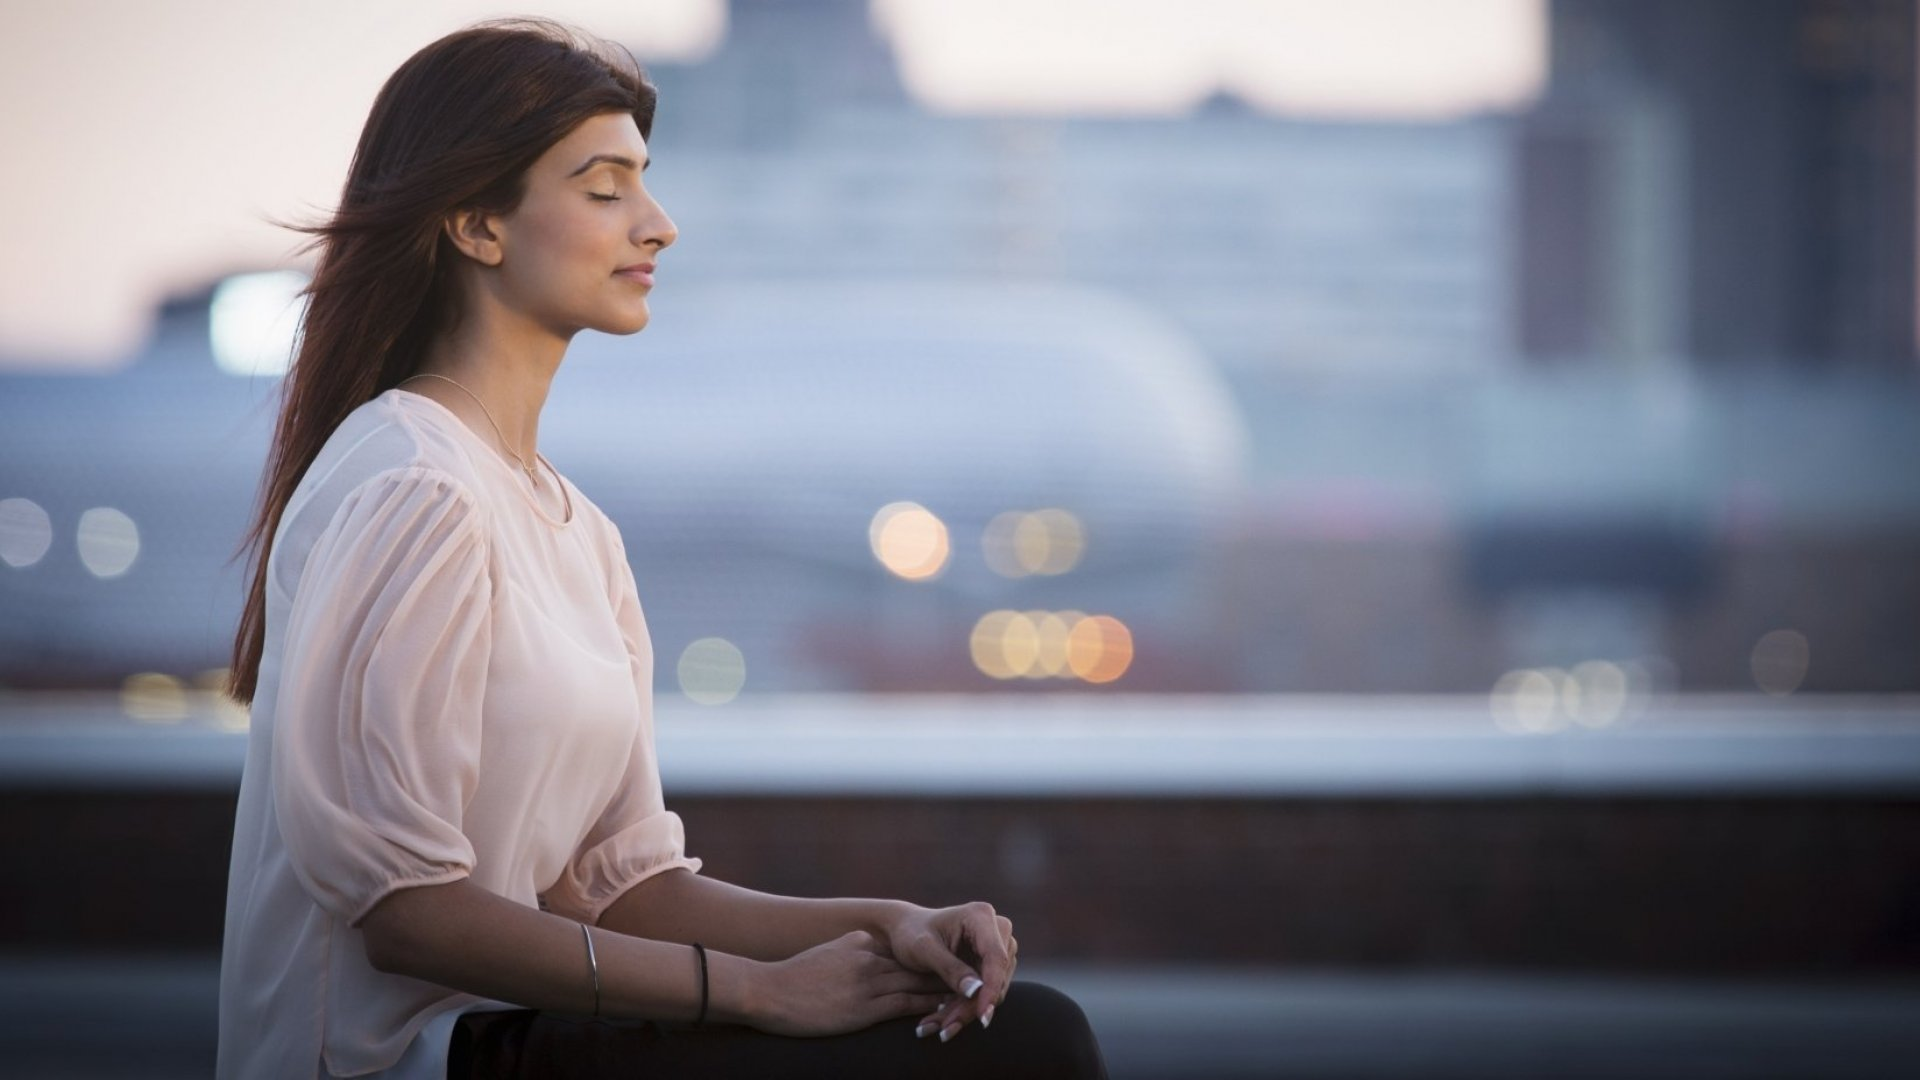 A Simple 5-Minute Meditation to Melt Away Tension